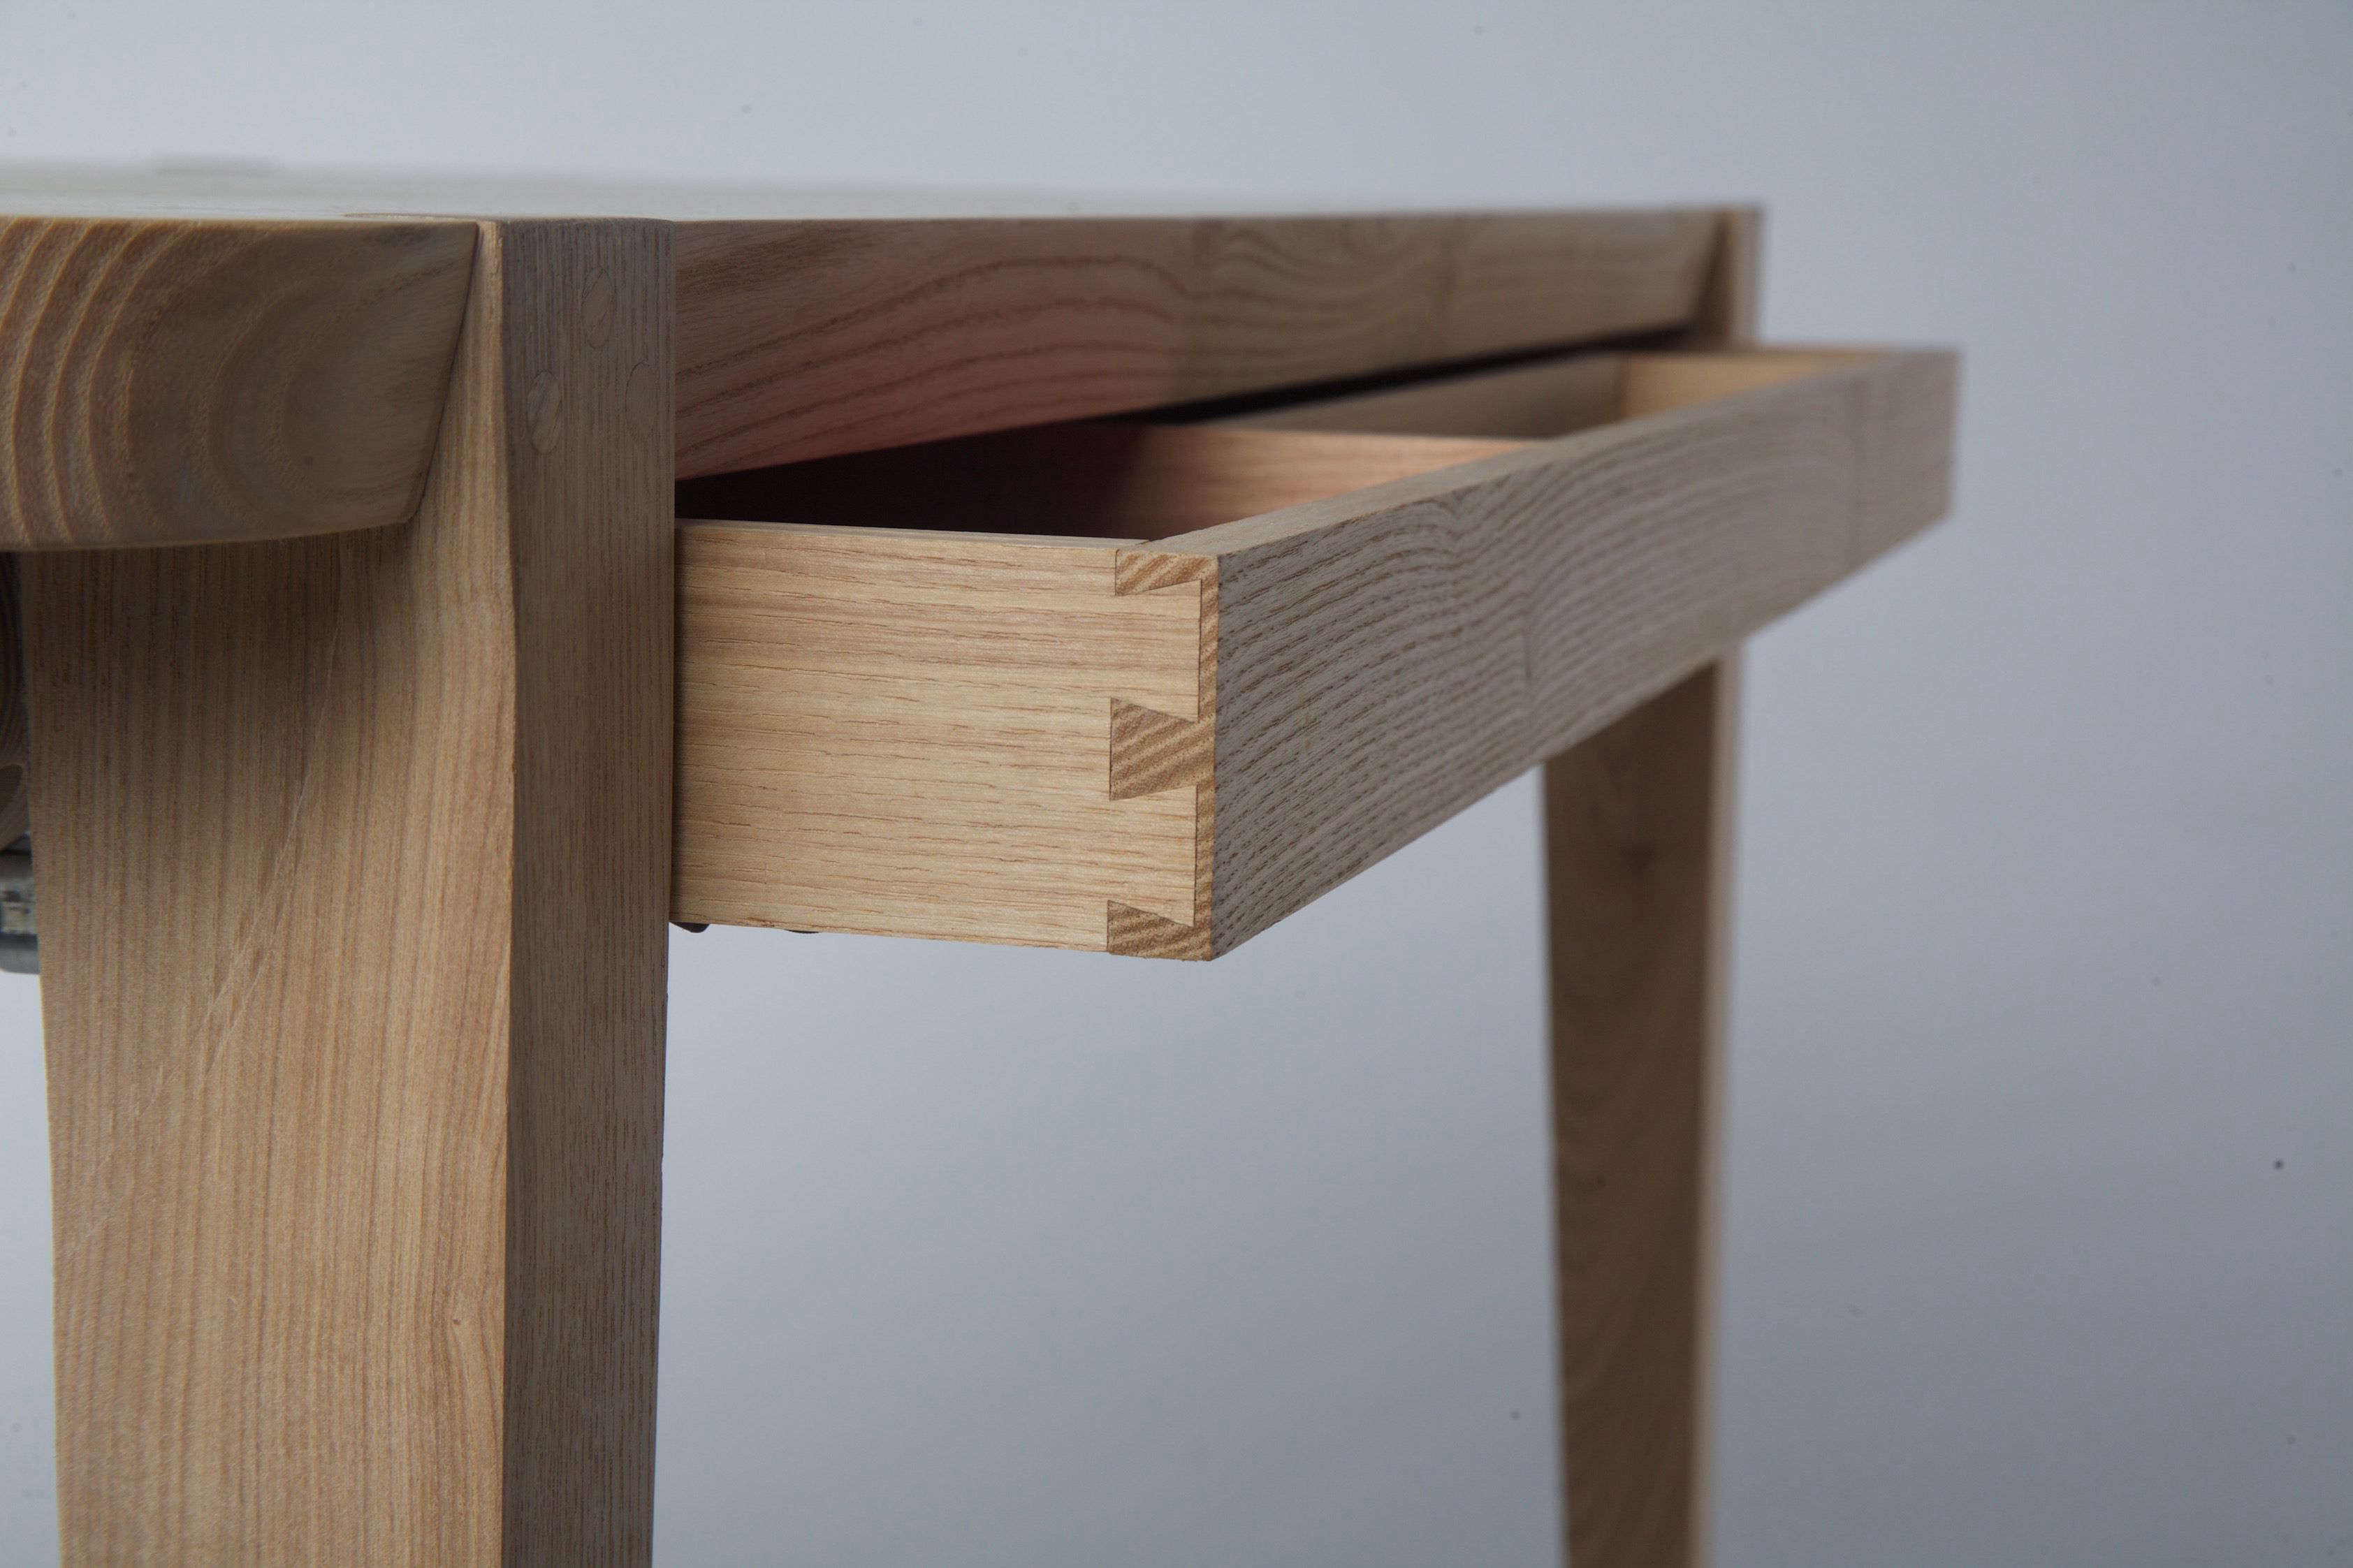 Detail, Studiomoe one-drawer Oslo desk made of American ash.